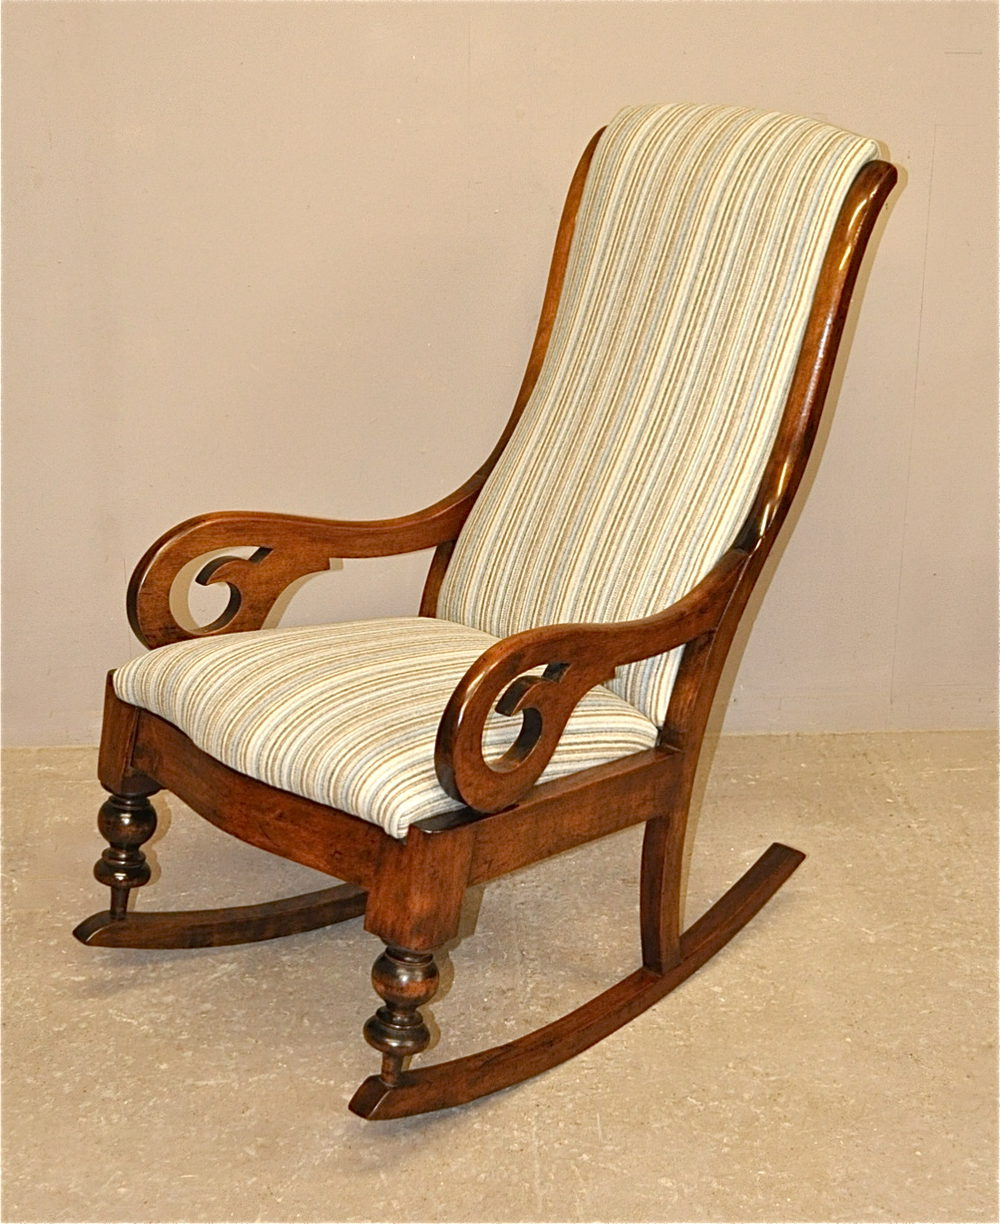 Mahogany Rocking Chair - Q3254 - Antiques Atlas